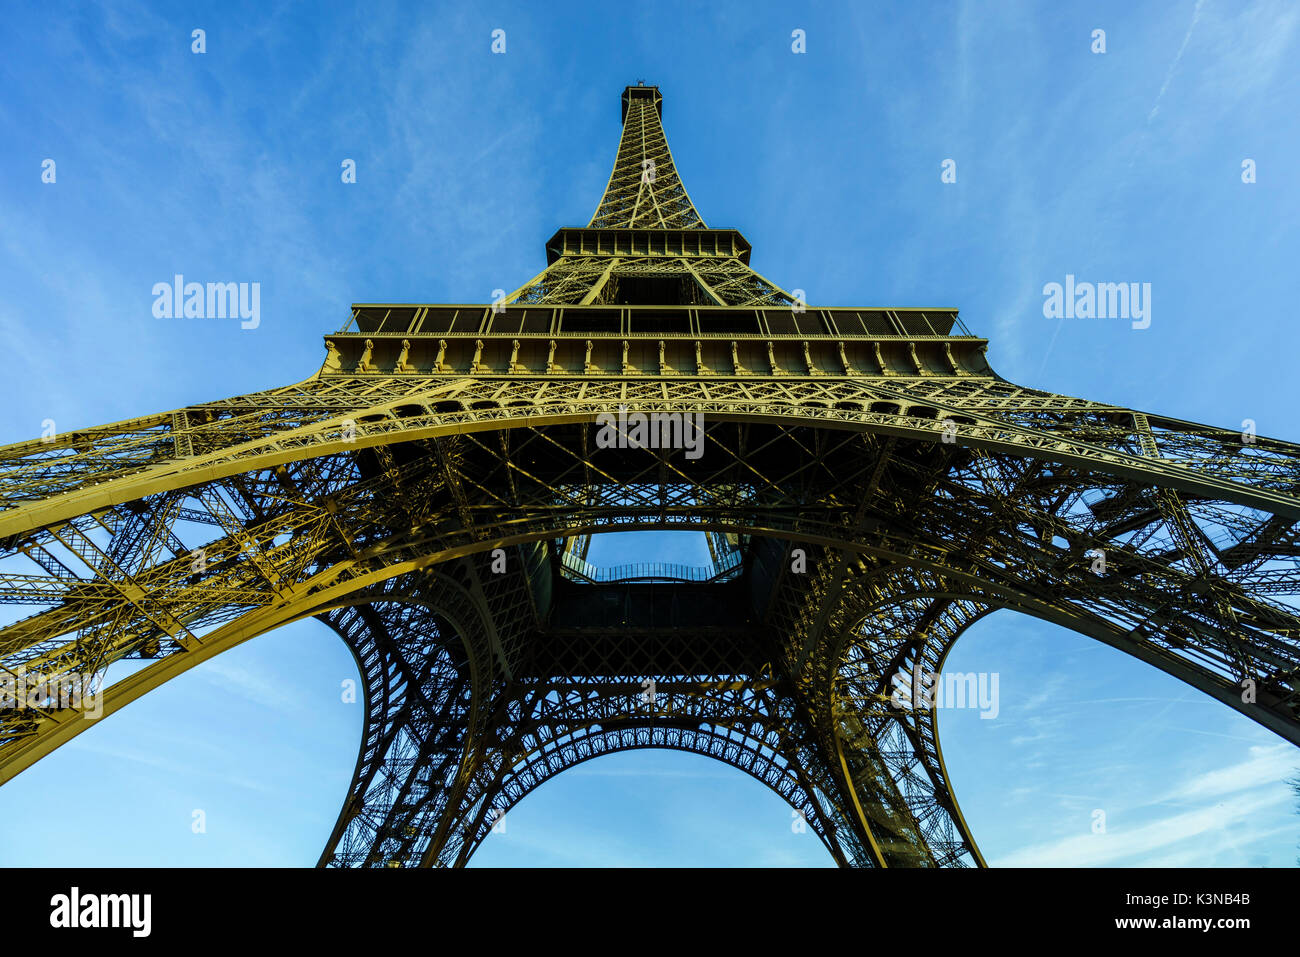 Perspective of the Eiffel Tower looking upward toward its top spire, Paris, France - Stock Image